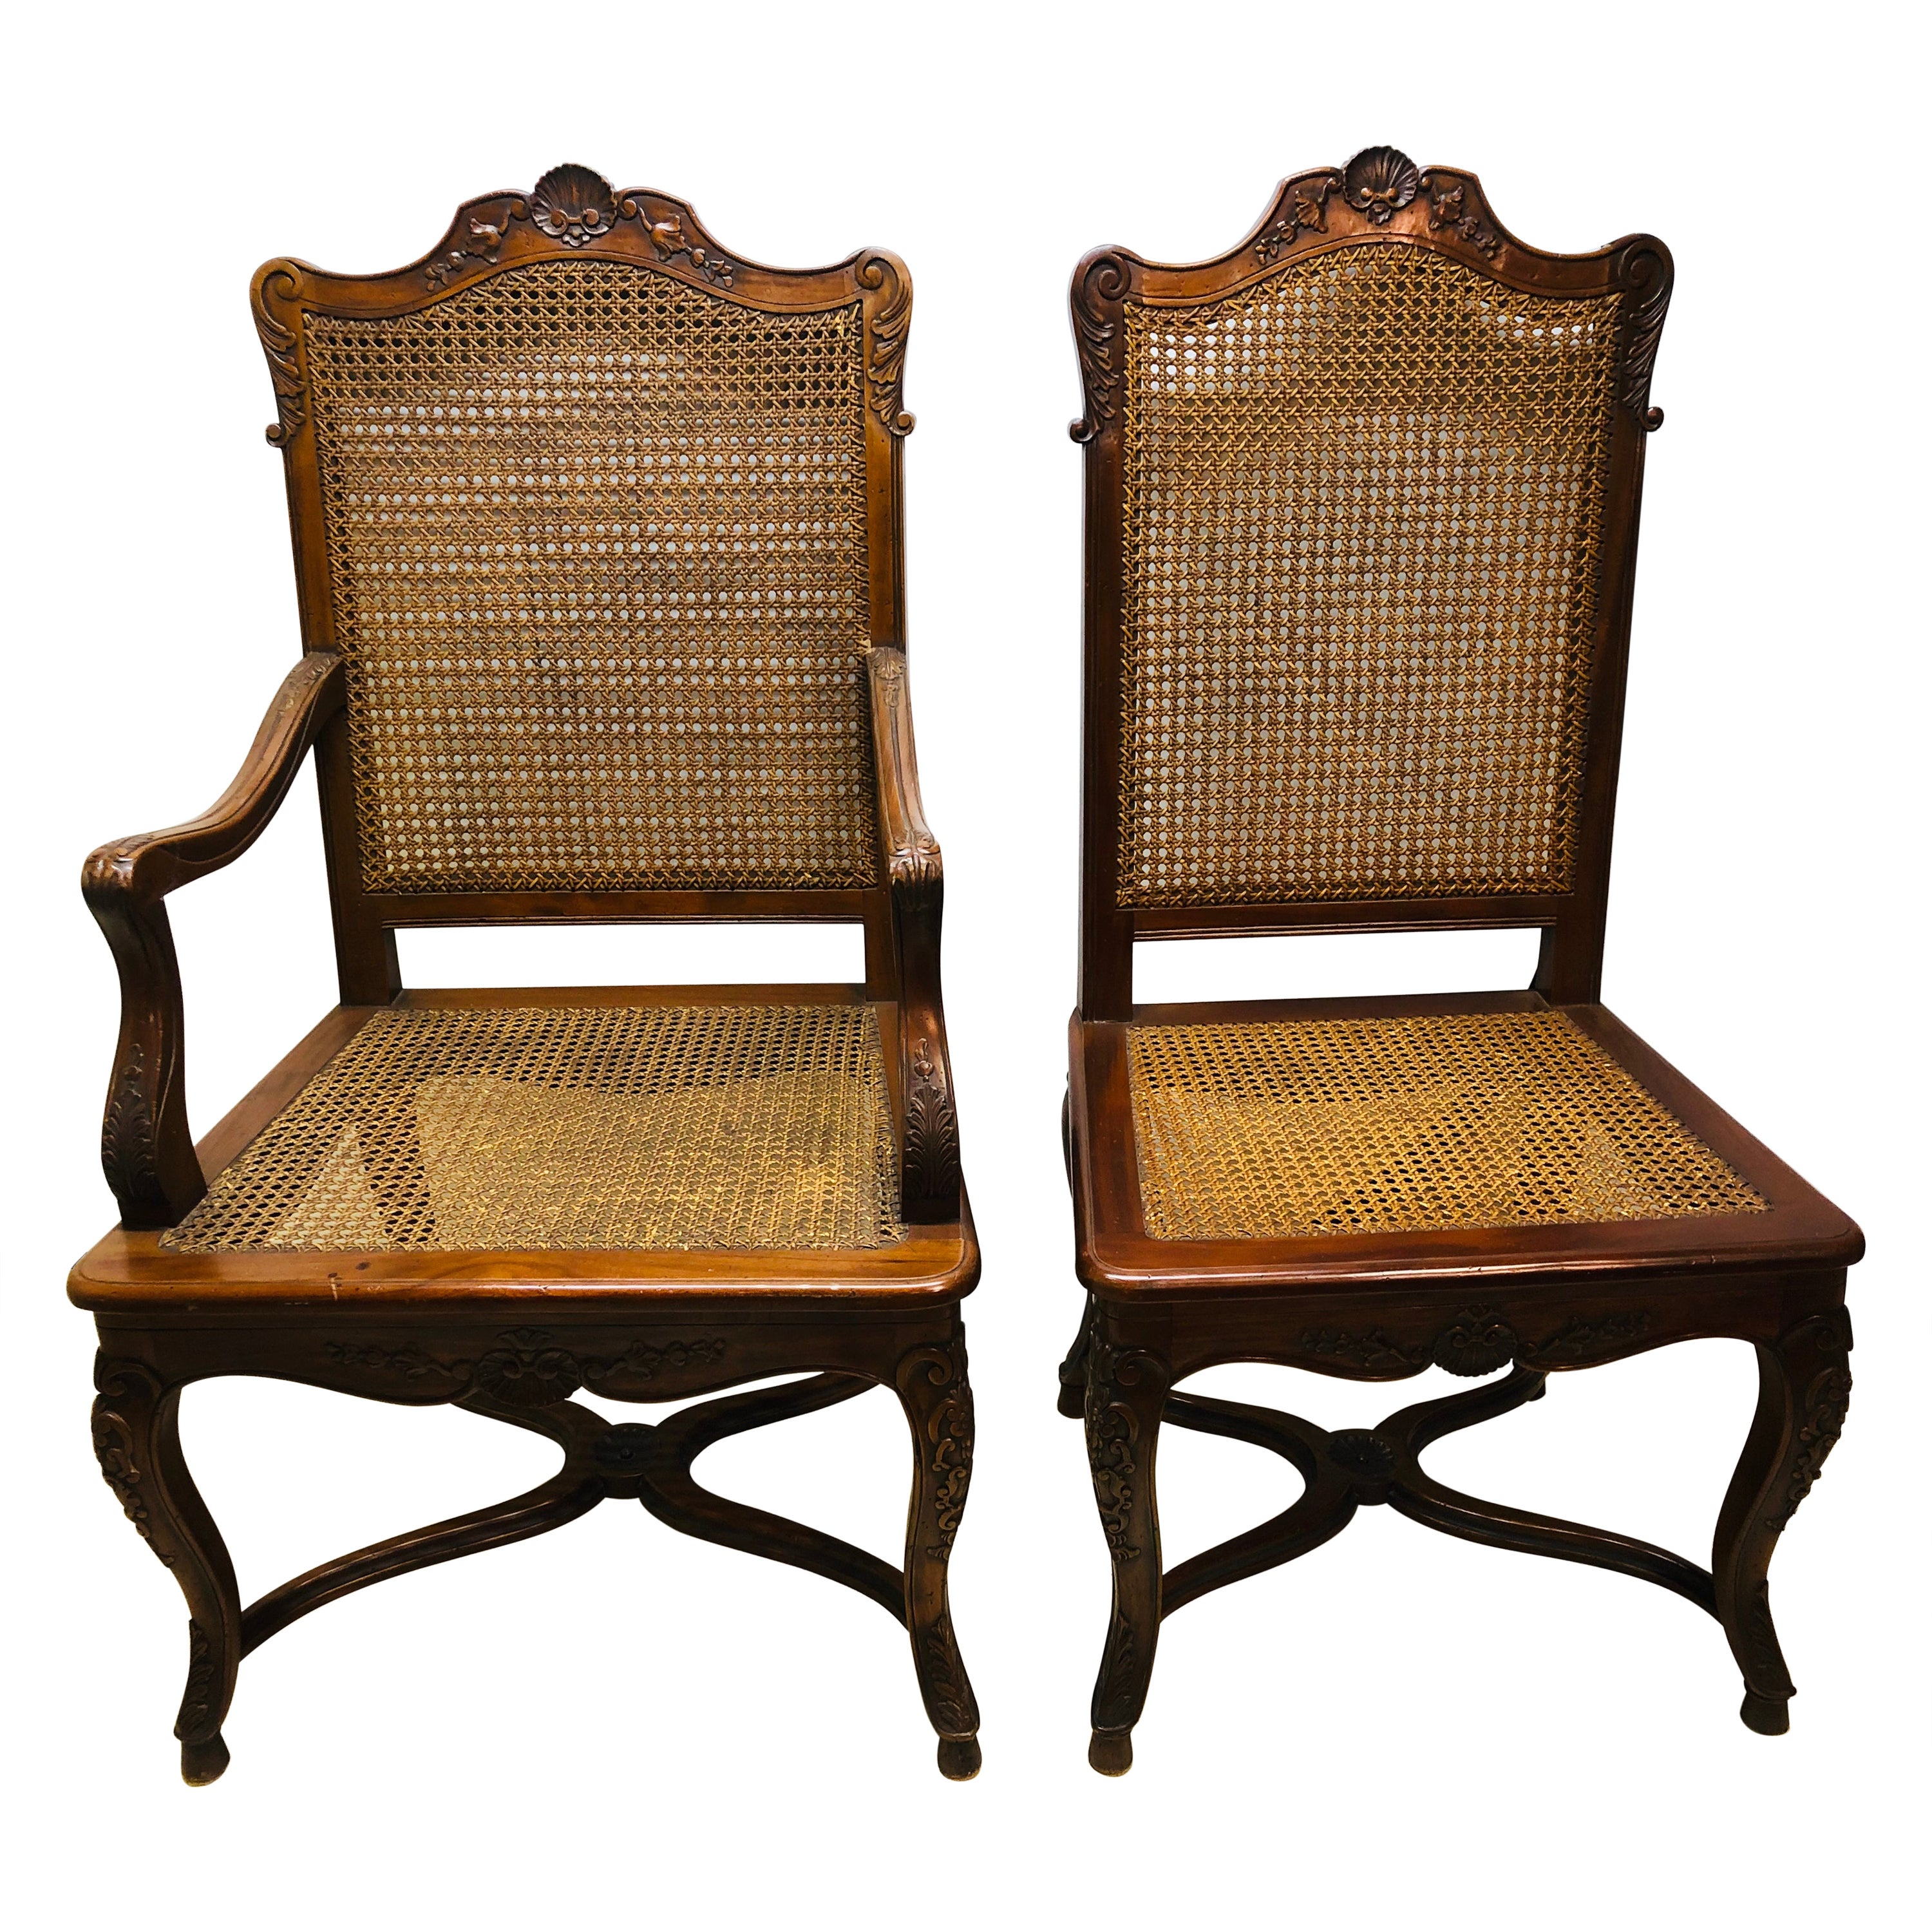 Eight French Country Chairs, Louis XV